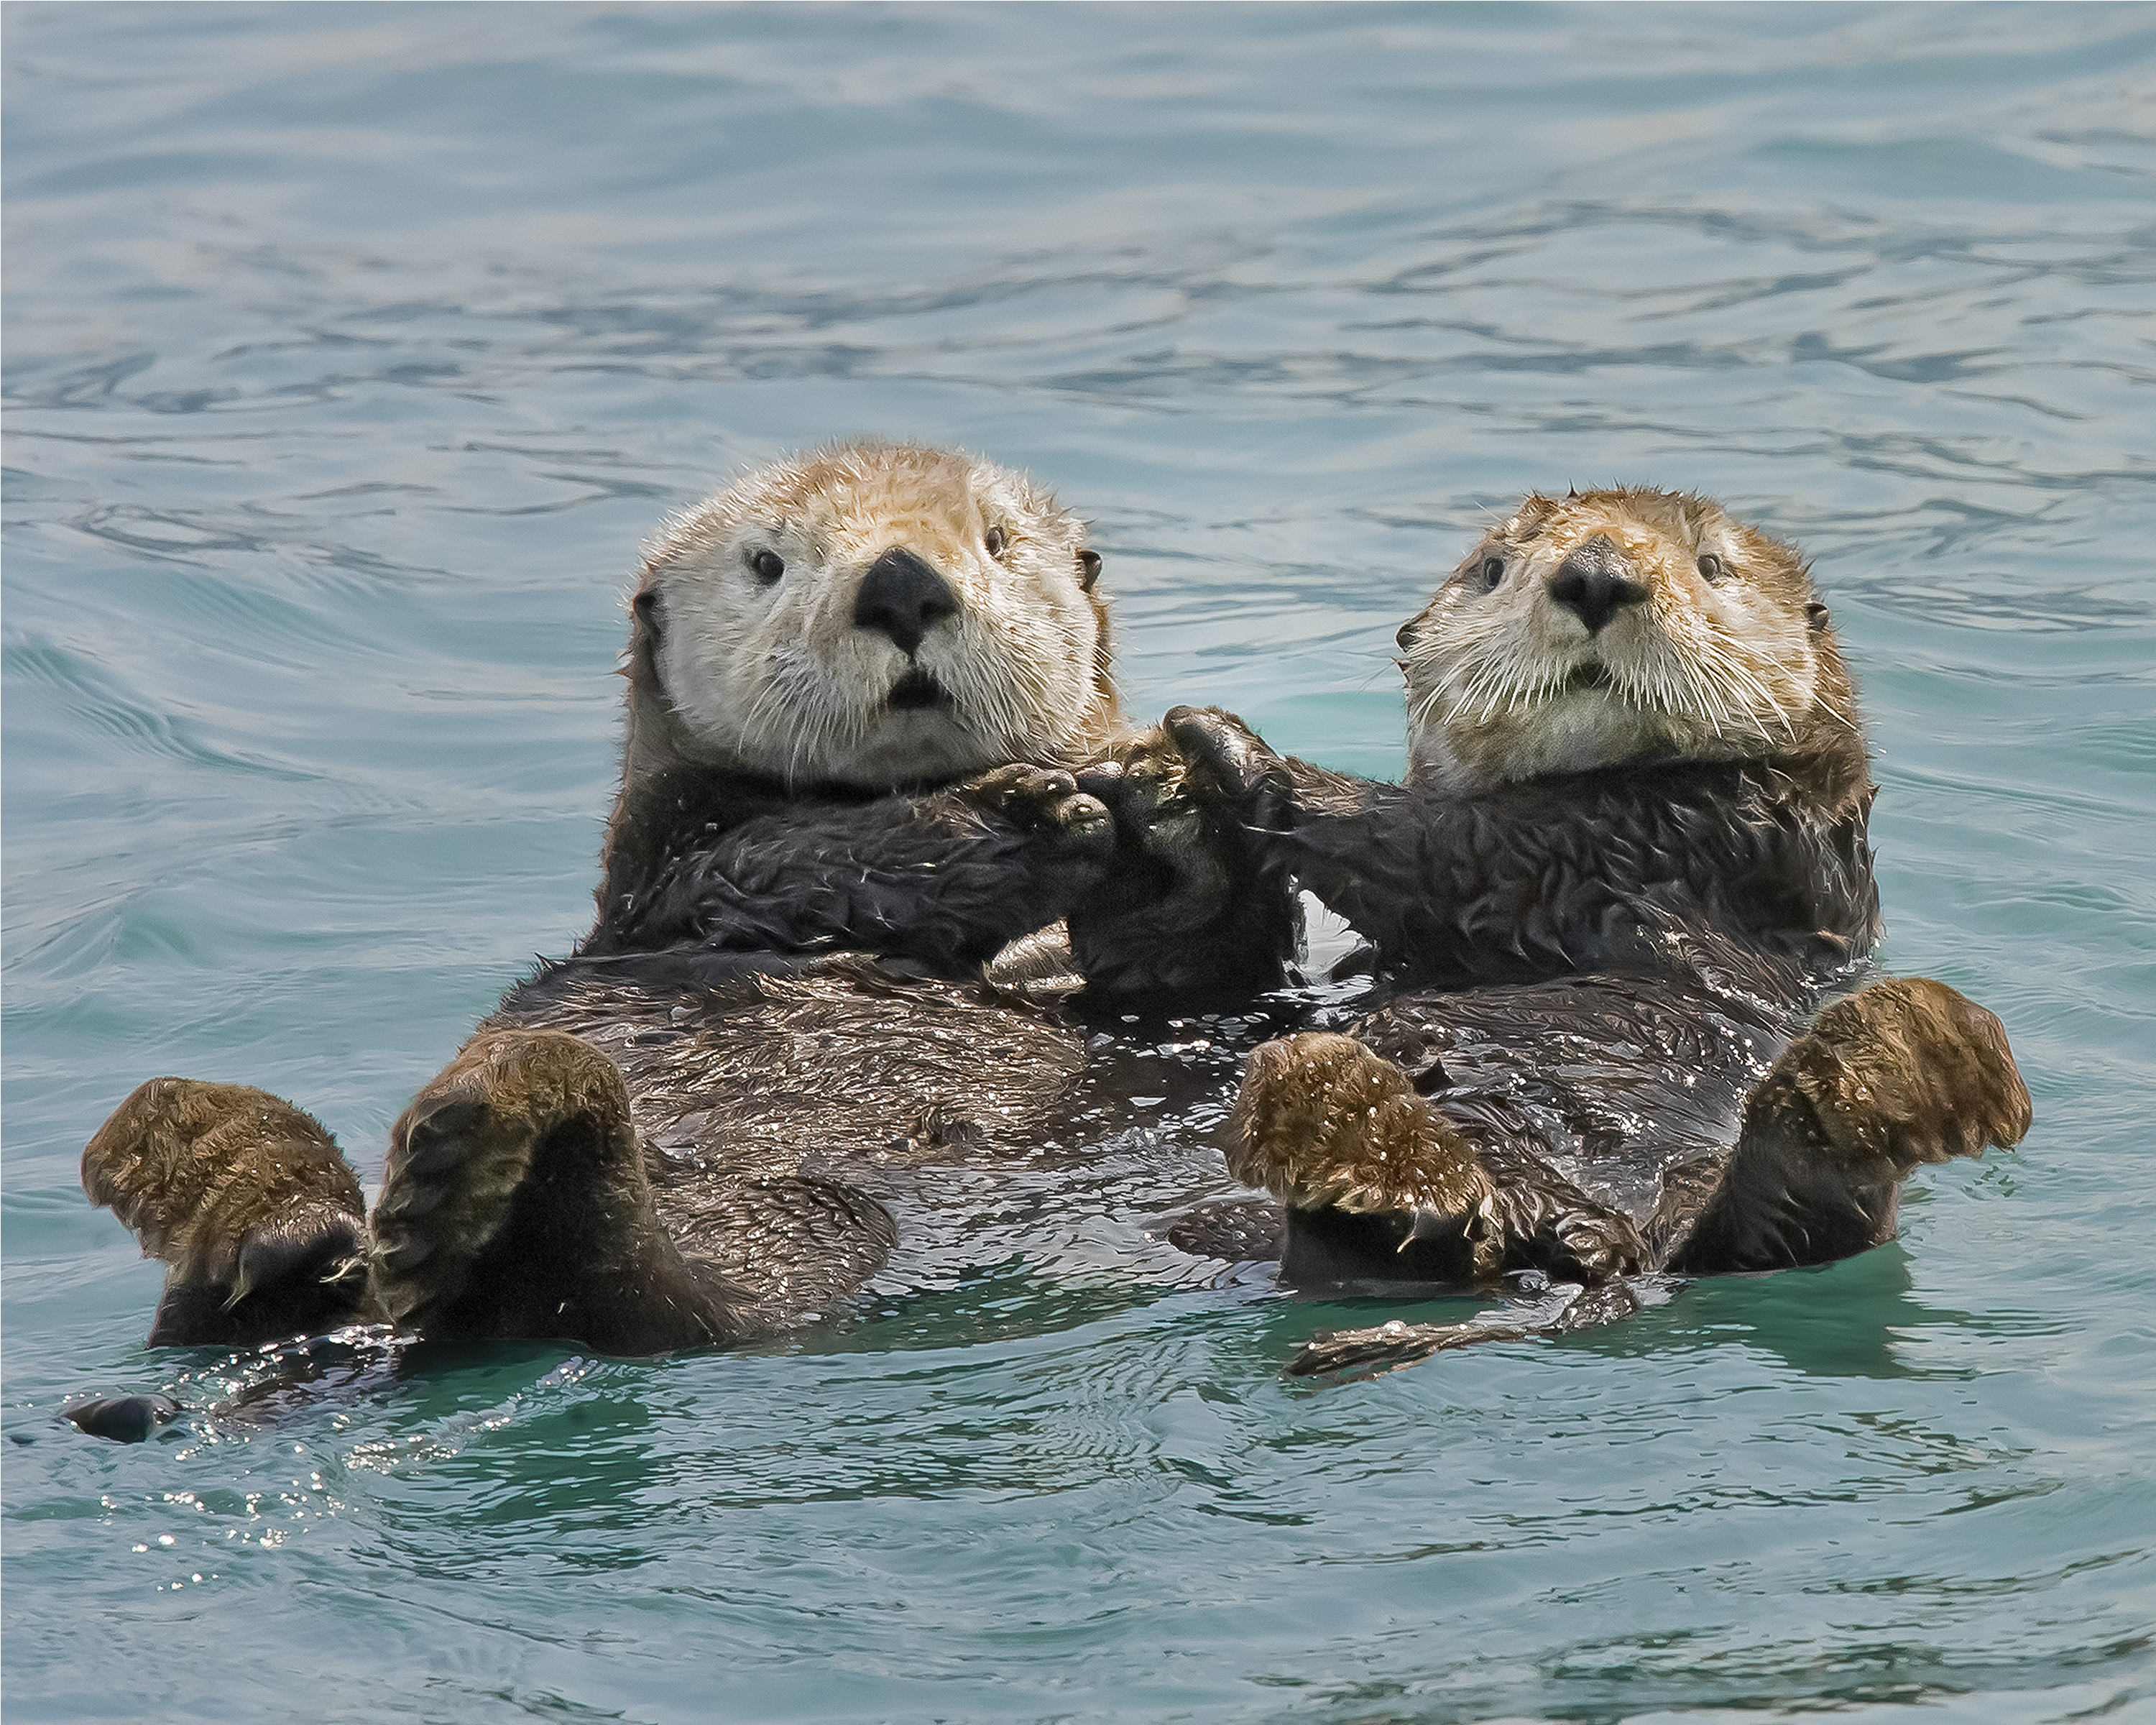 Two bears one otter